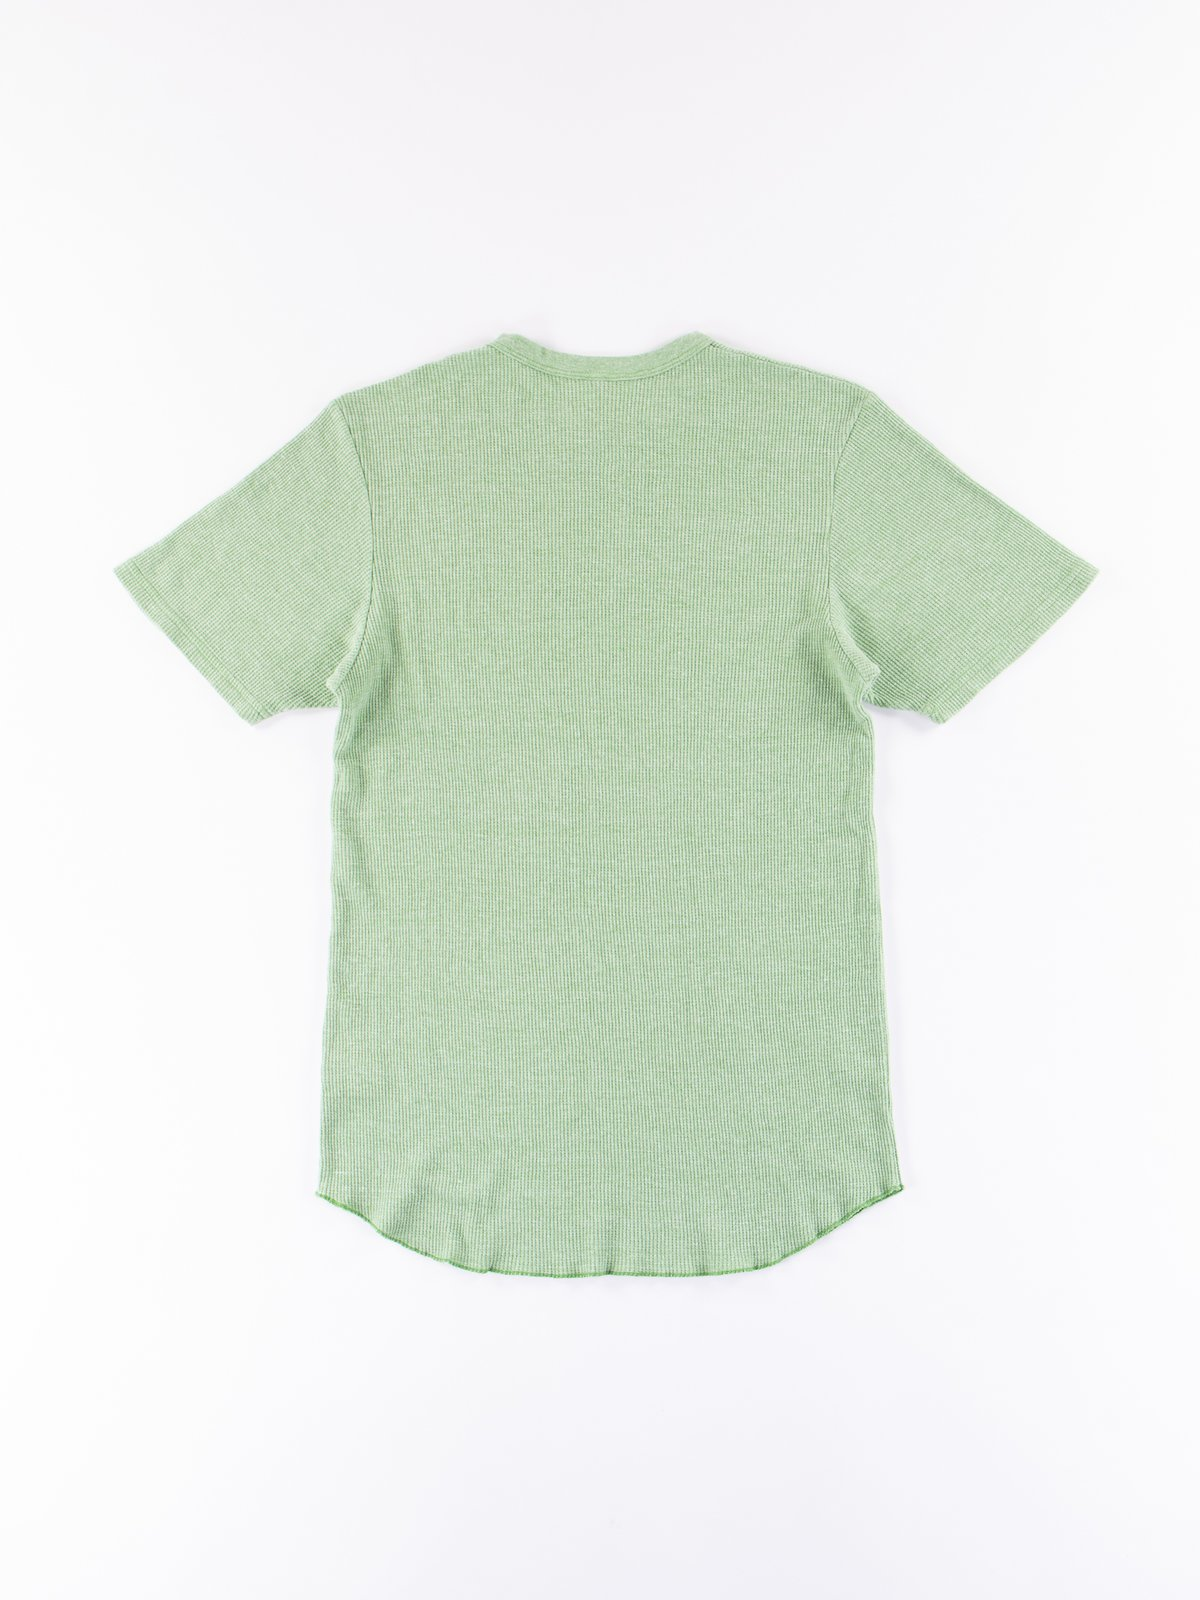 Heather Lime Tri Thermal T–Shirt - Image 5